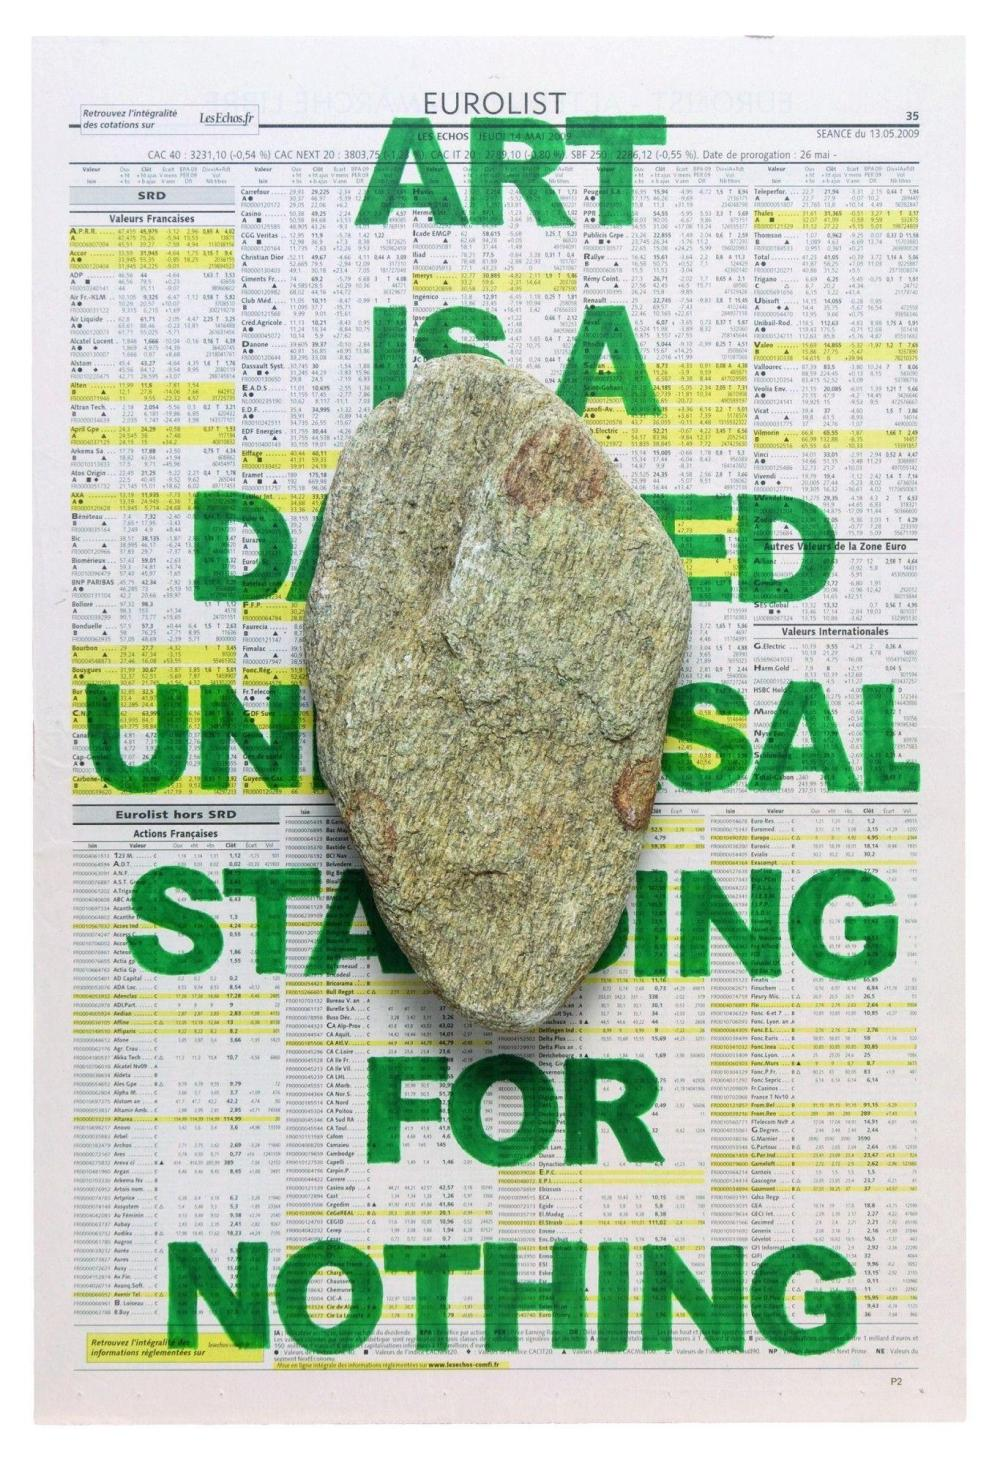 Franck Scurti (born 1965) Statement, # 9, 2009 Stone, newspaper, acrylic, wood, (framed)